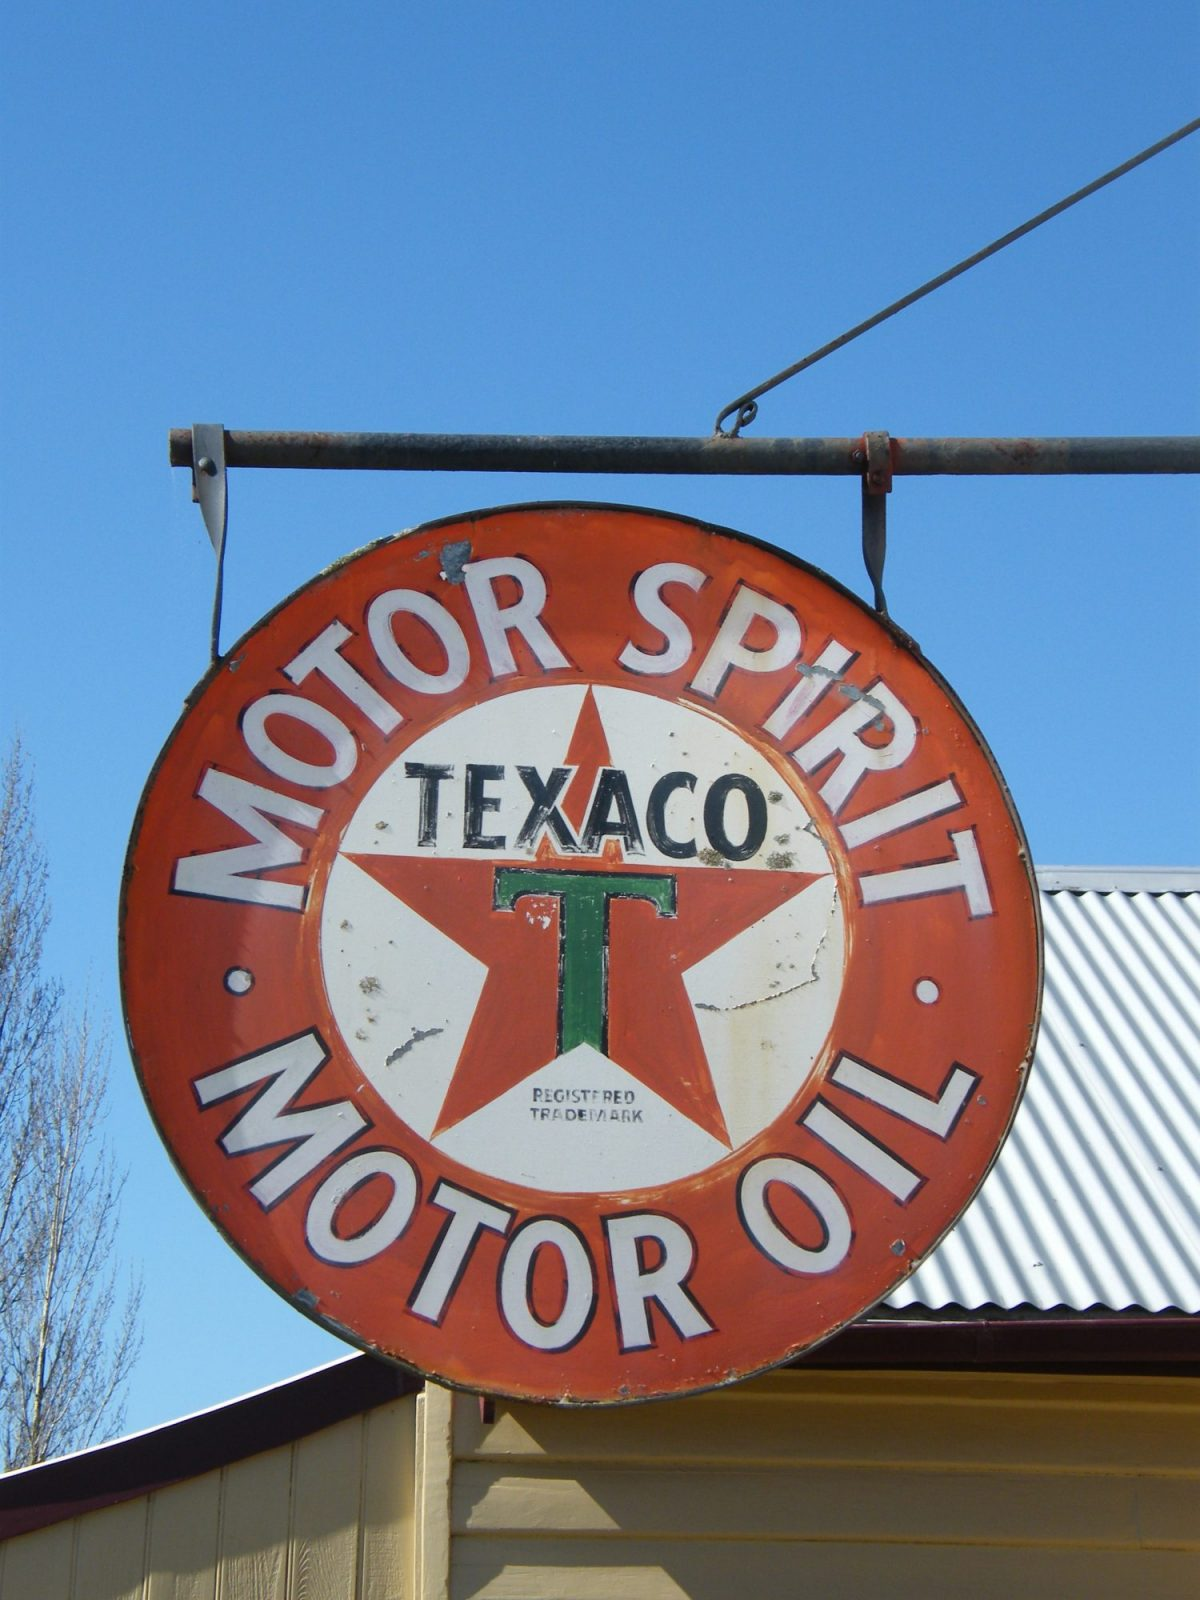 Texaco Motor Oil Sign found in back yard and donated as a gift to the park